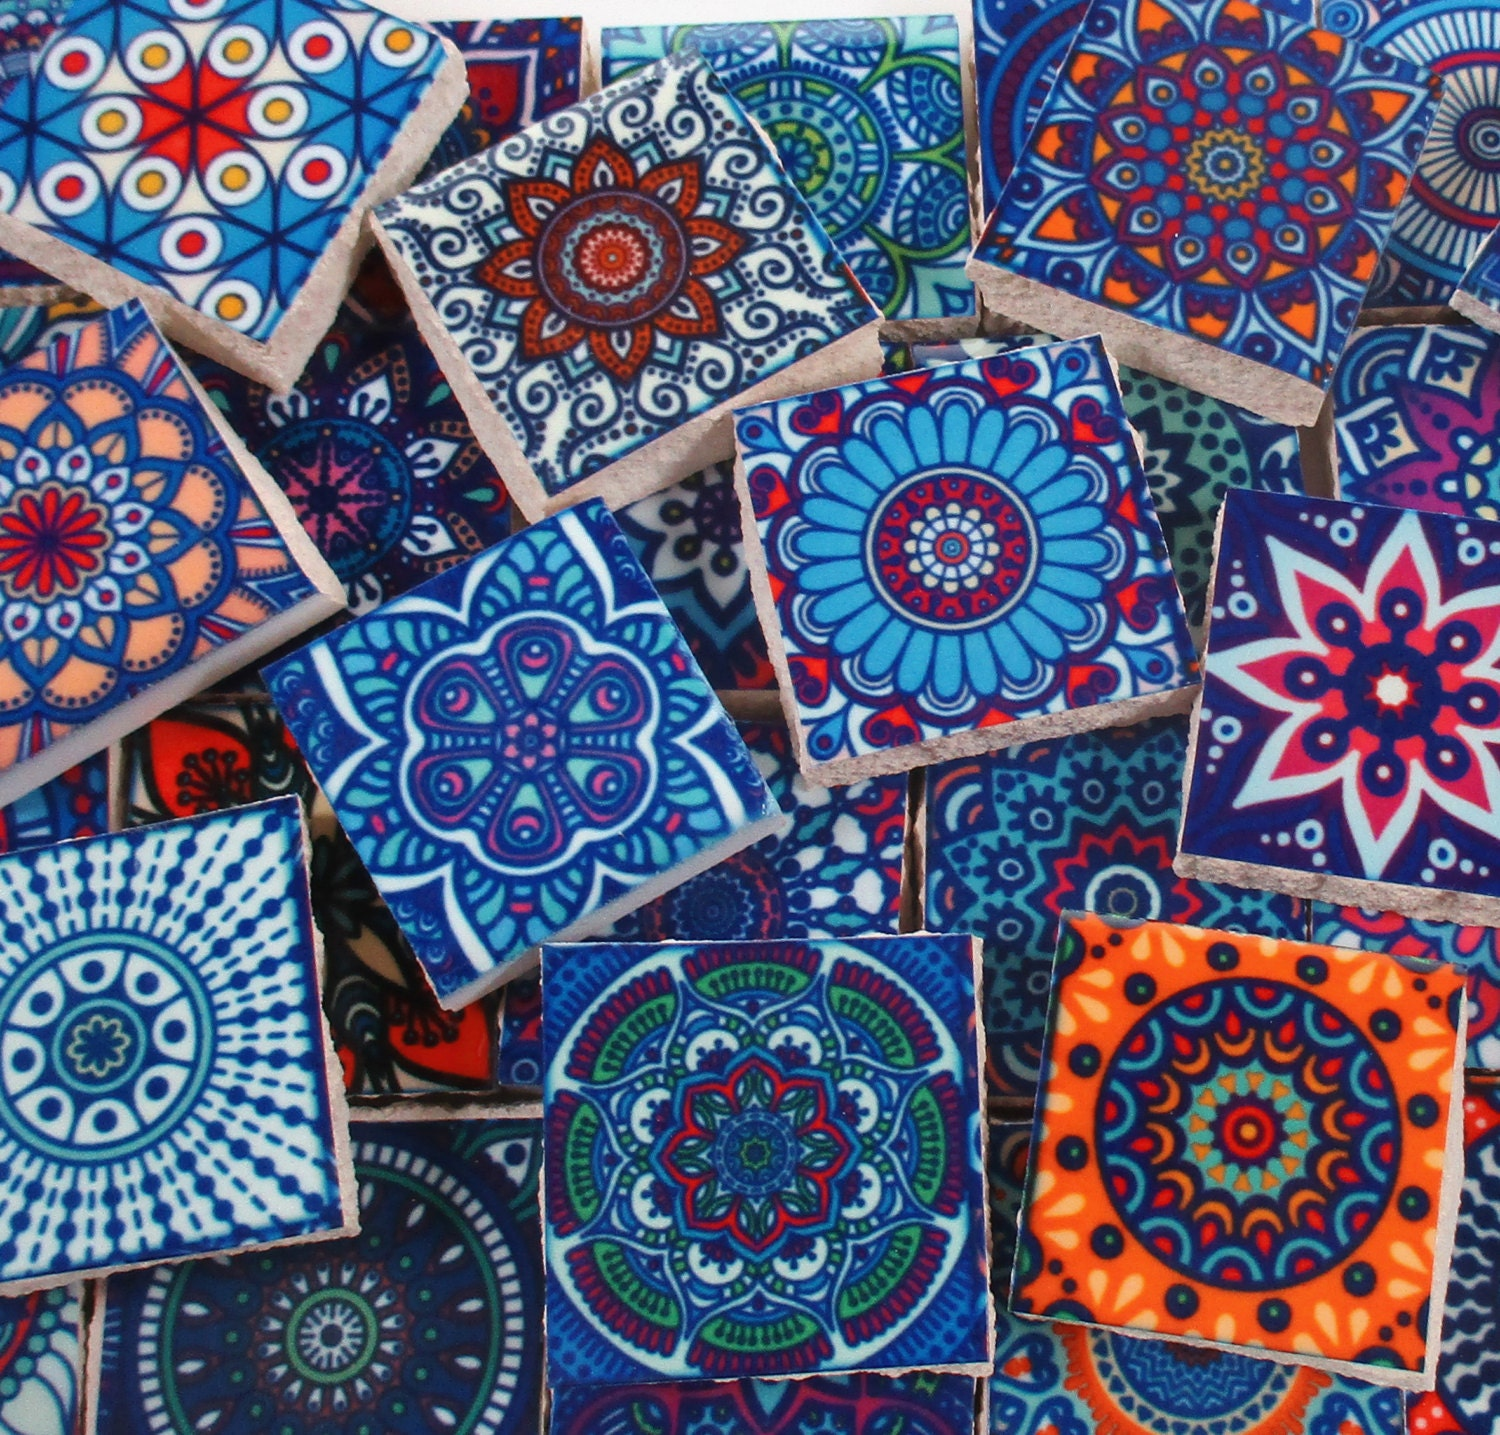 Ceramic Mosaic Tiles - Multi Blue Colors Medallions Moroccan Tile ...